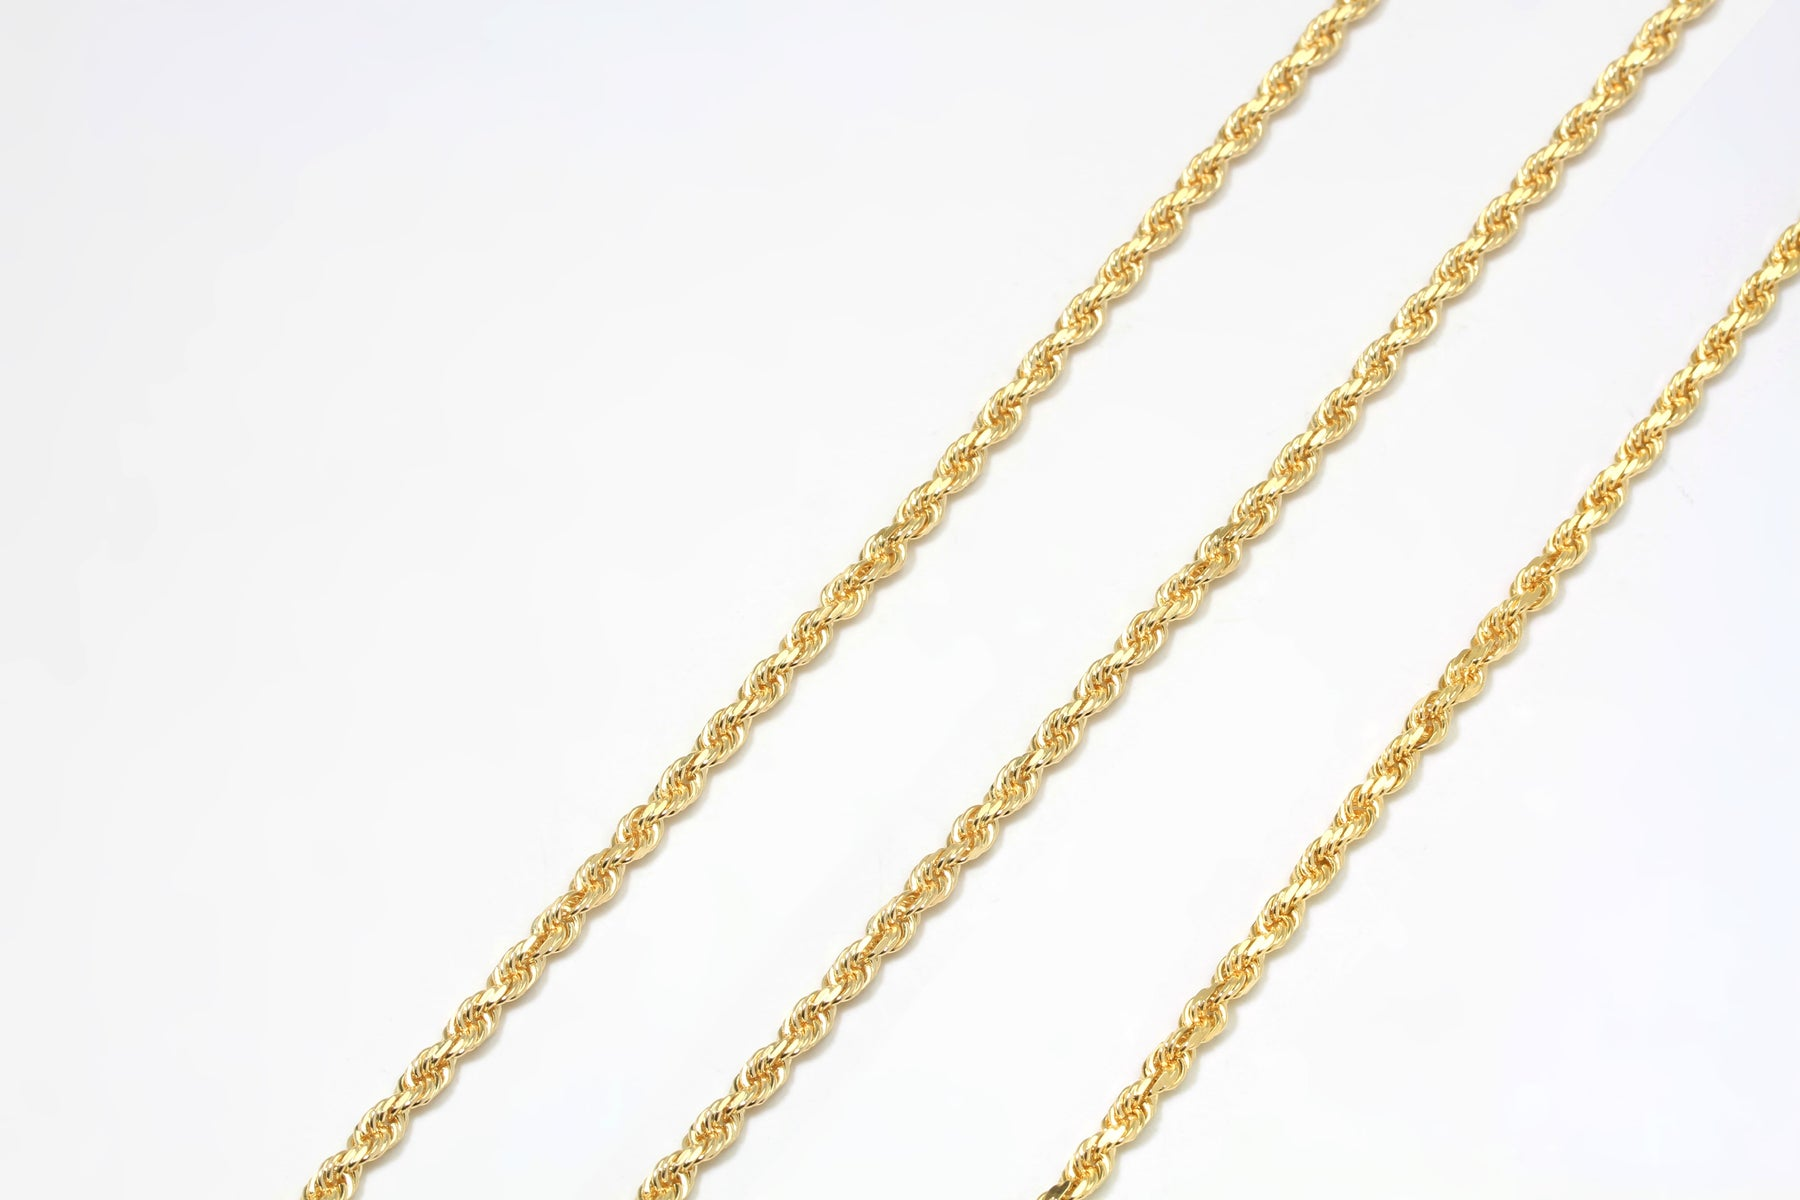 chains yellow chain belcher gold designs pics the online india jewellery in bluestone buy